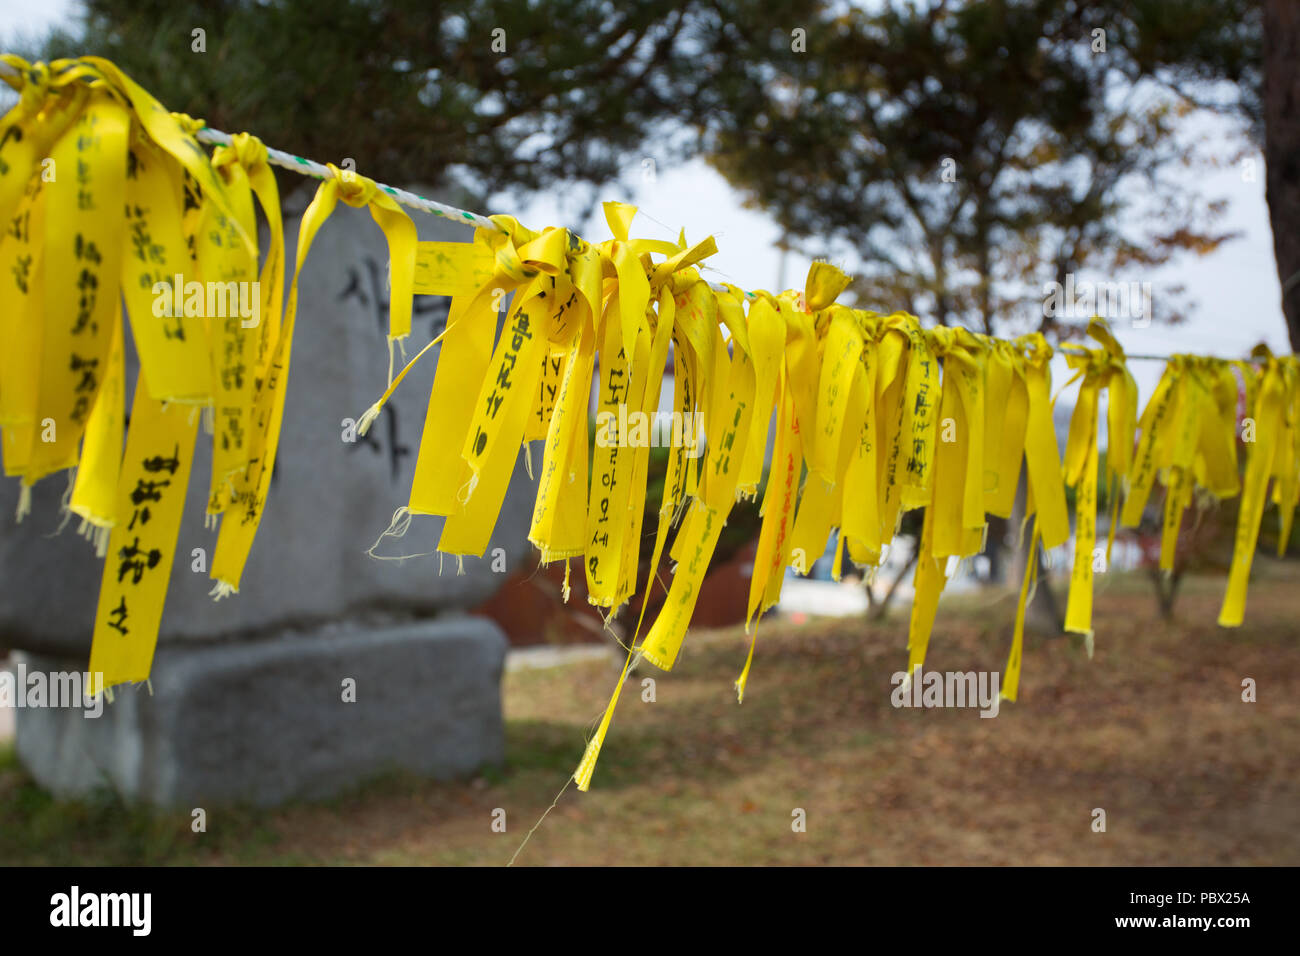 South Korean Hope Ribbons - Stock Image